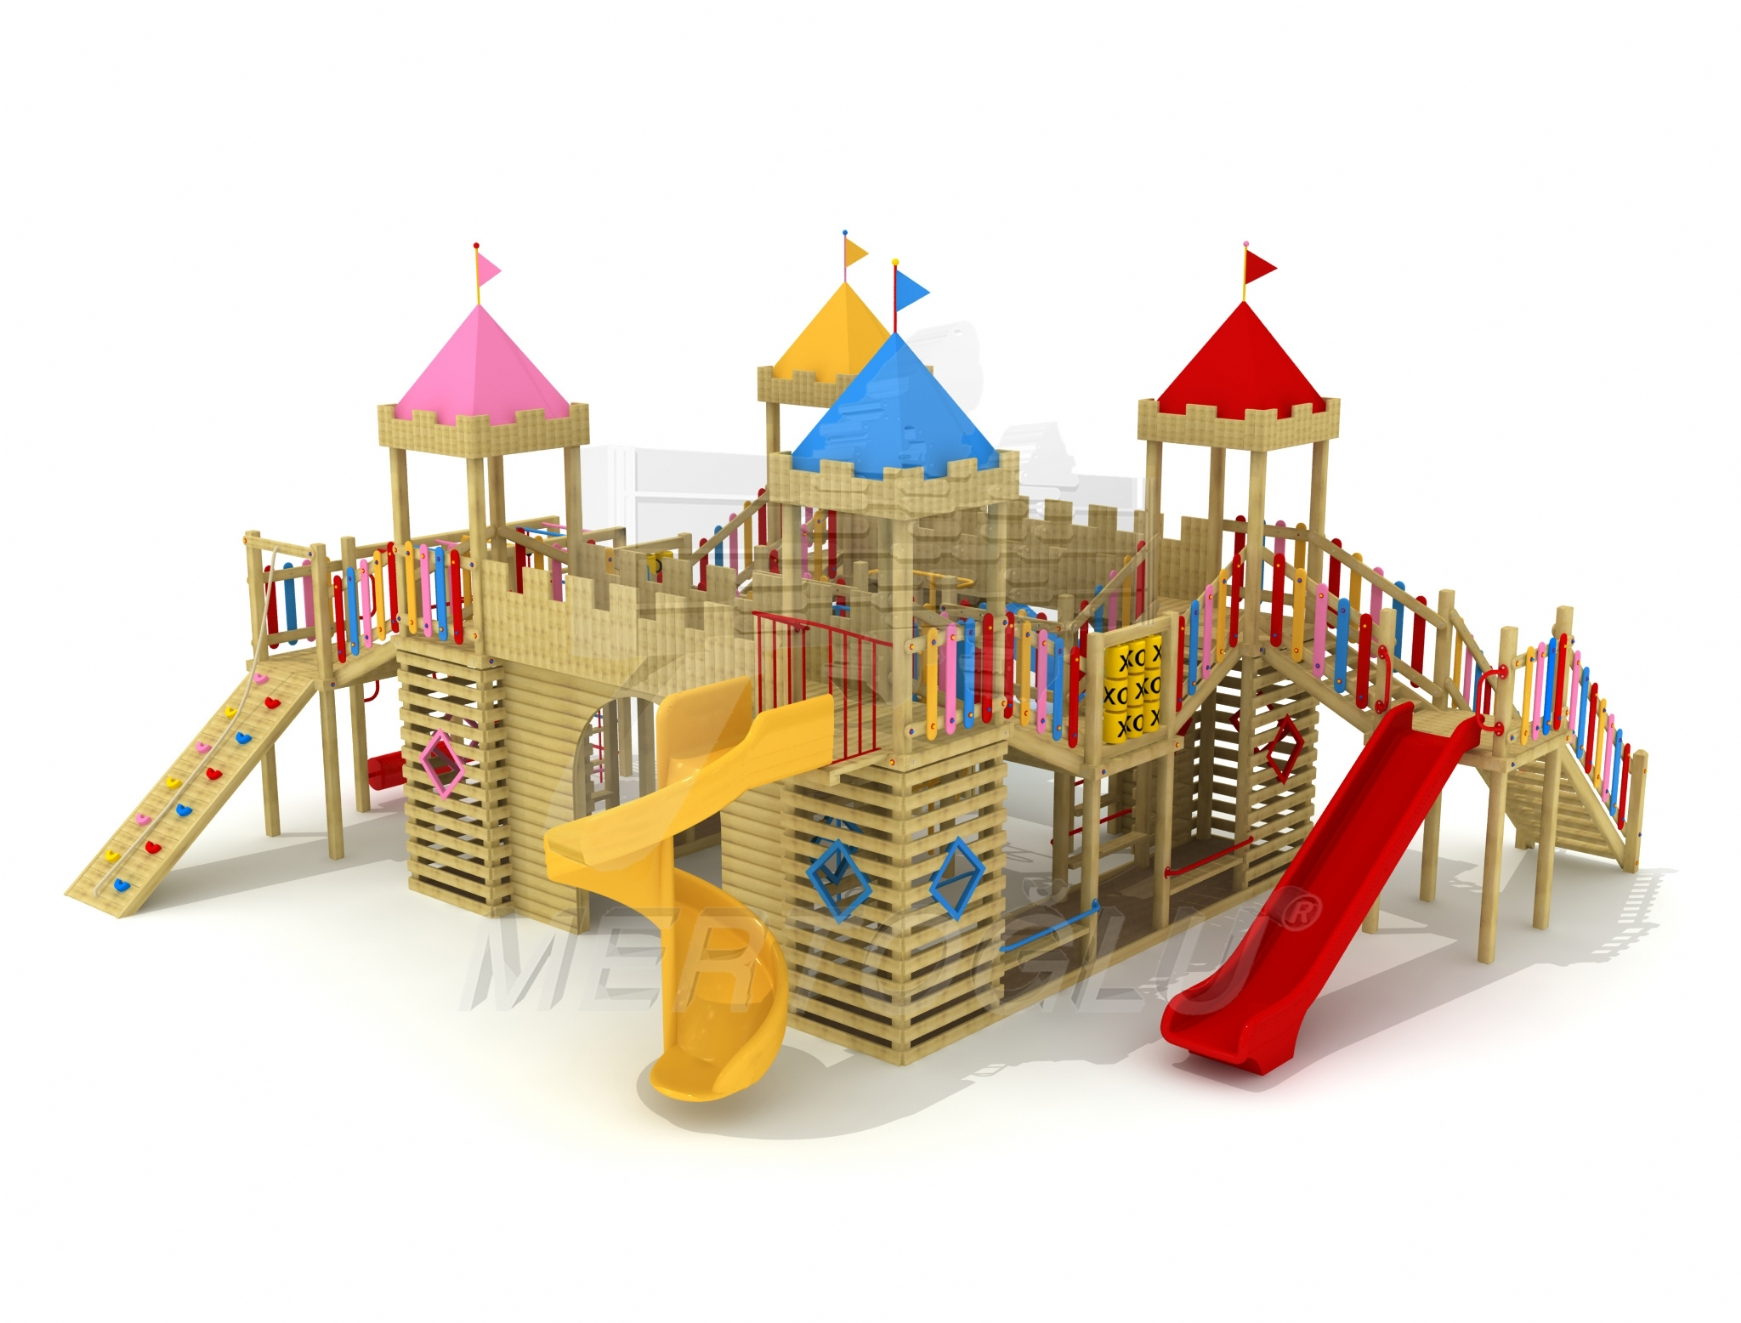 Mertoglu concept wooden play ground saw the desired interest resultes from R & D team Works.